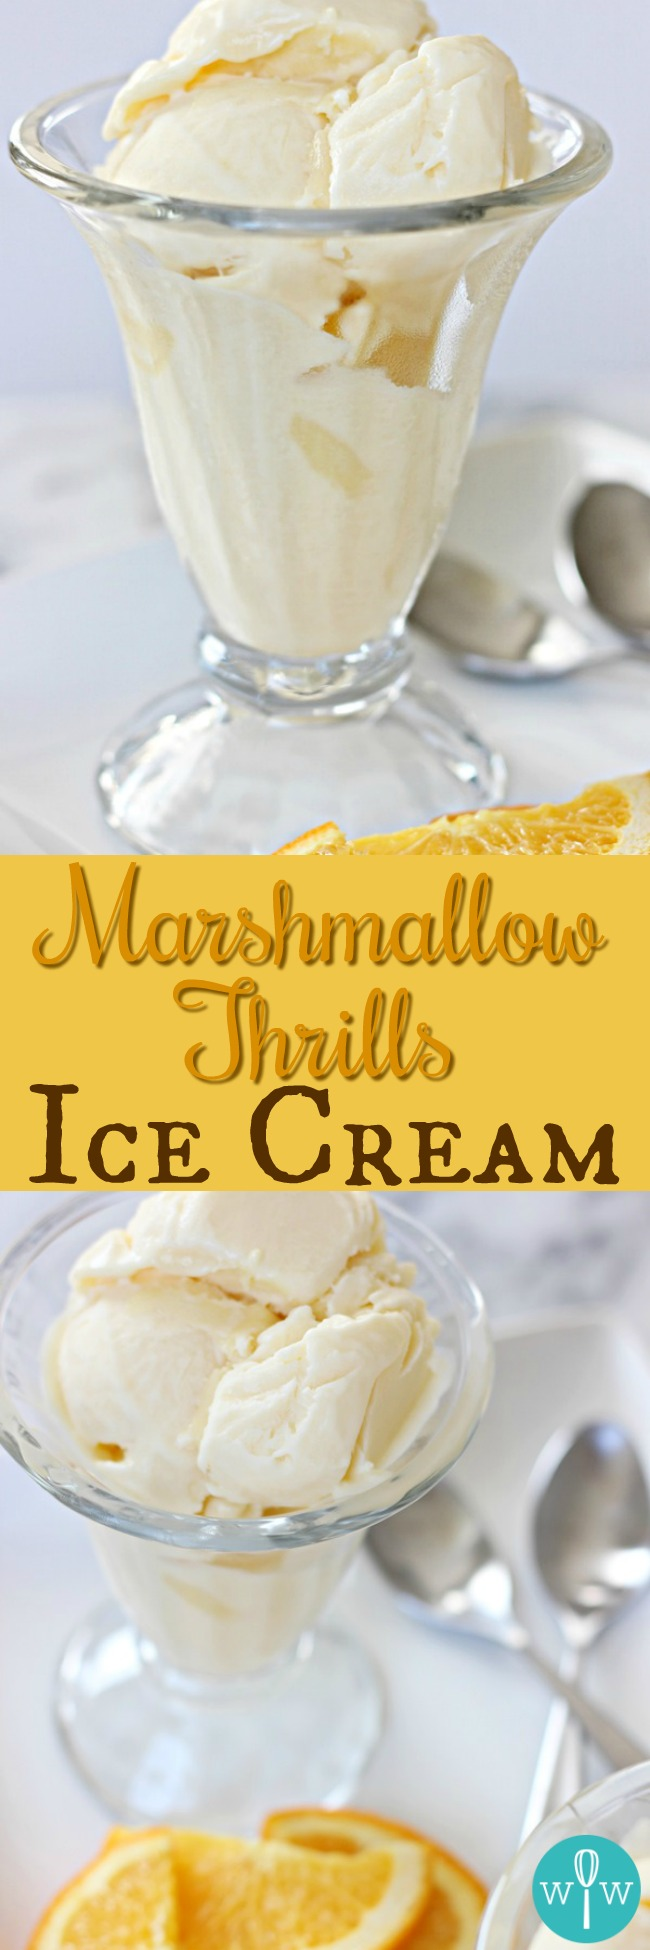 Marshmallow Thrills Ice Cream – This timeless, simple creamy orange no-churn ice cream made with marshmallows comes straight from my grandma's recipe book! | www.worthwhisking.com